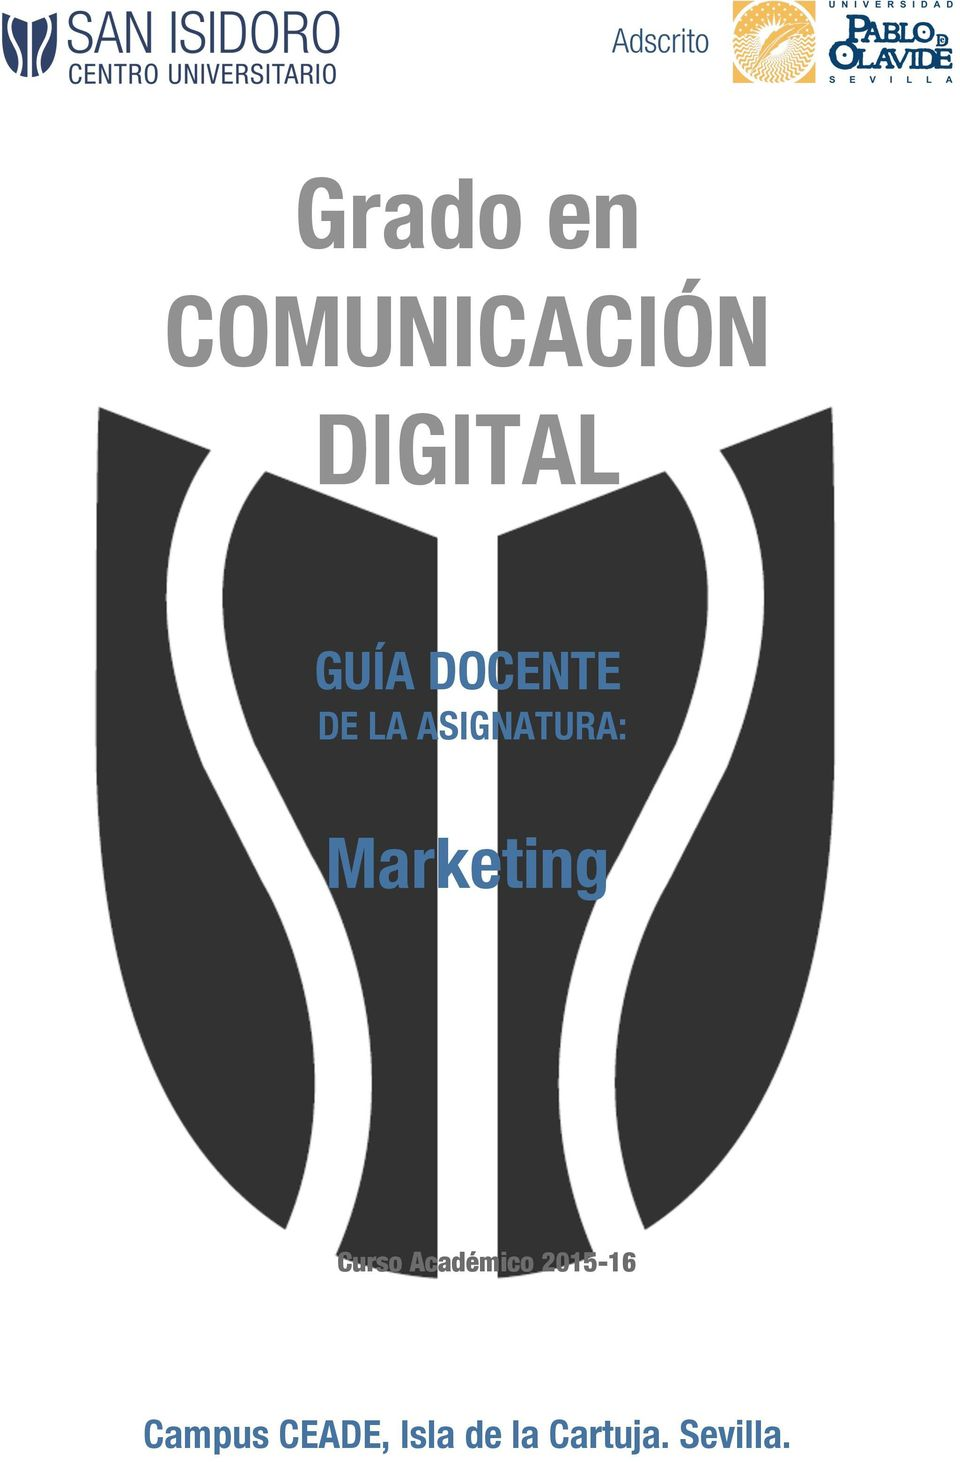 Marketing Curso Académico 2015-16